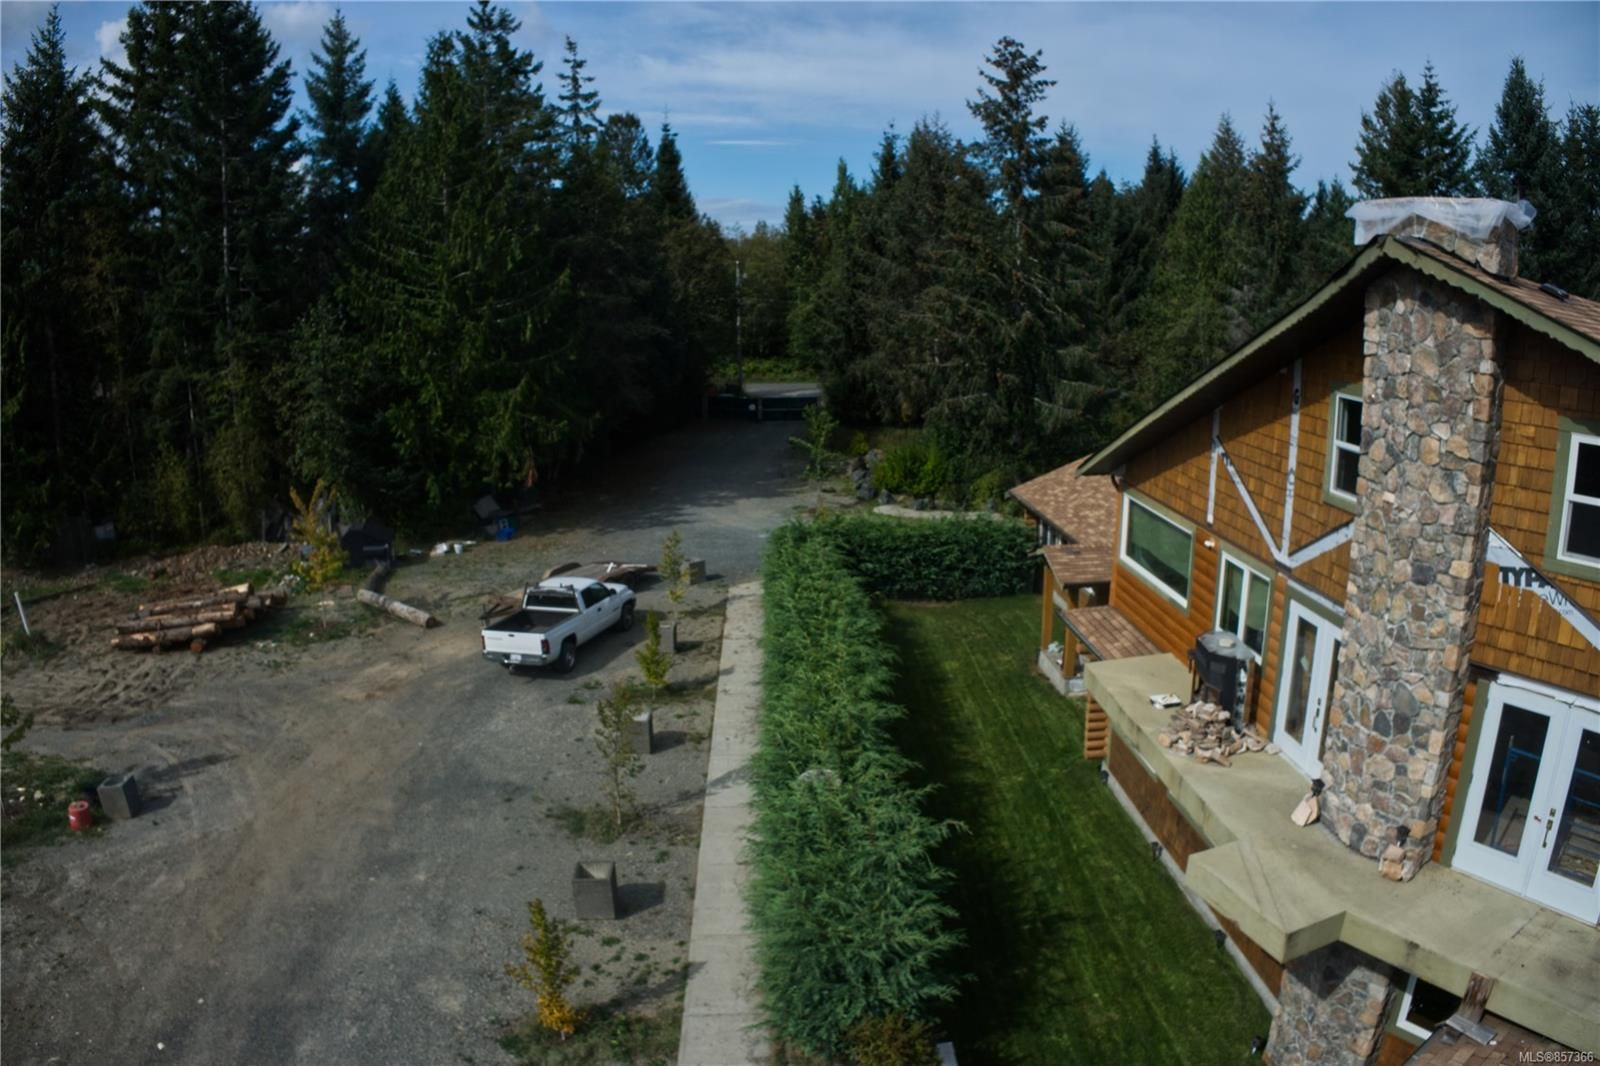 Photo 3: Photos: 1747 Nahmint Rd in : PQ Qualicum North Mixed Use for sale (Parksville/Qualicum)  : MLS®# 857366